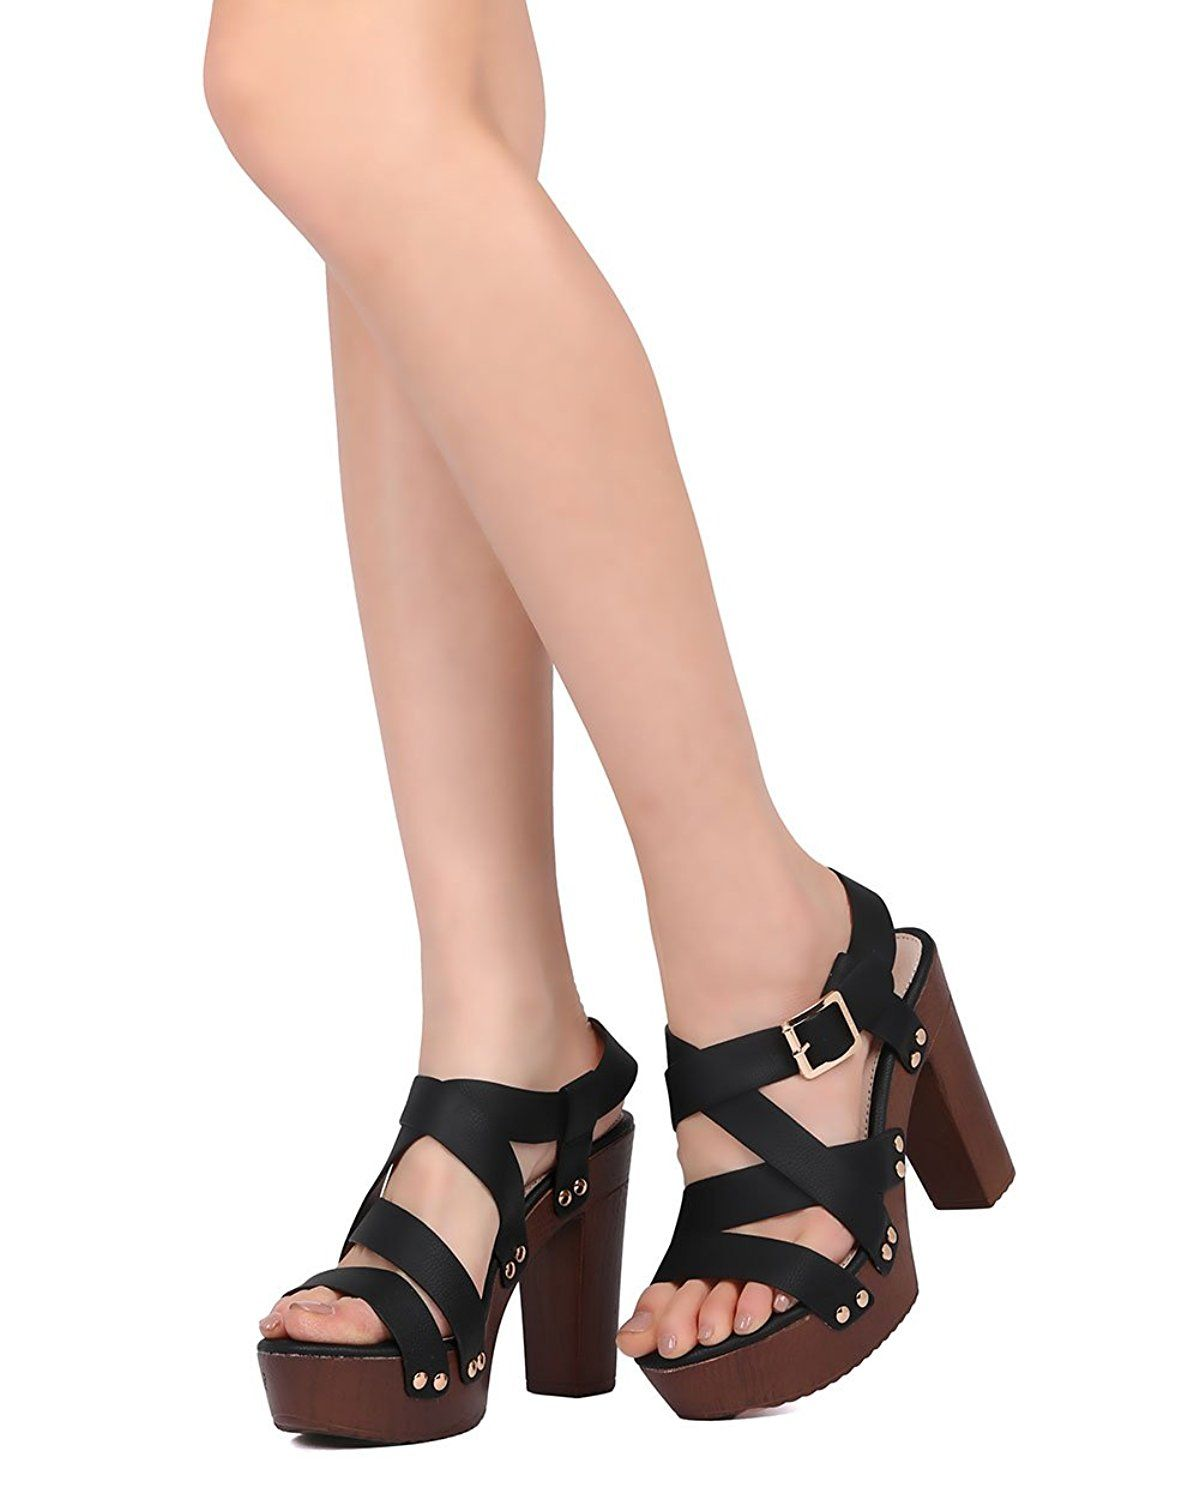 cd6598db7d Alrisco Leatherette Strappy Faux Wooden Block Heel - Dressy, Party, Date  Night - Chunky Heel Pump - GD43 by ** You can find more details by visiting  the ...